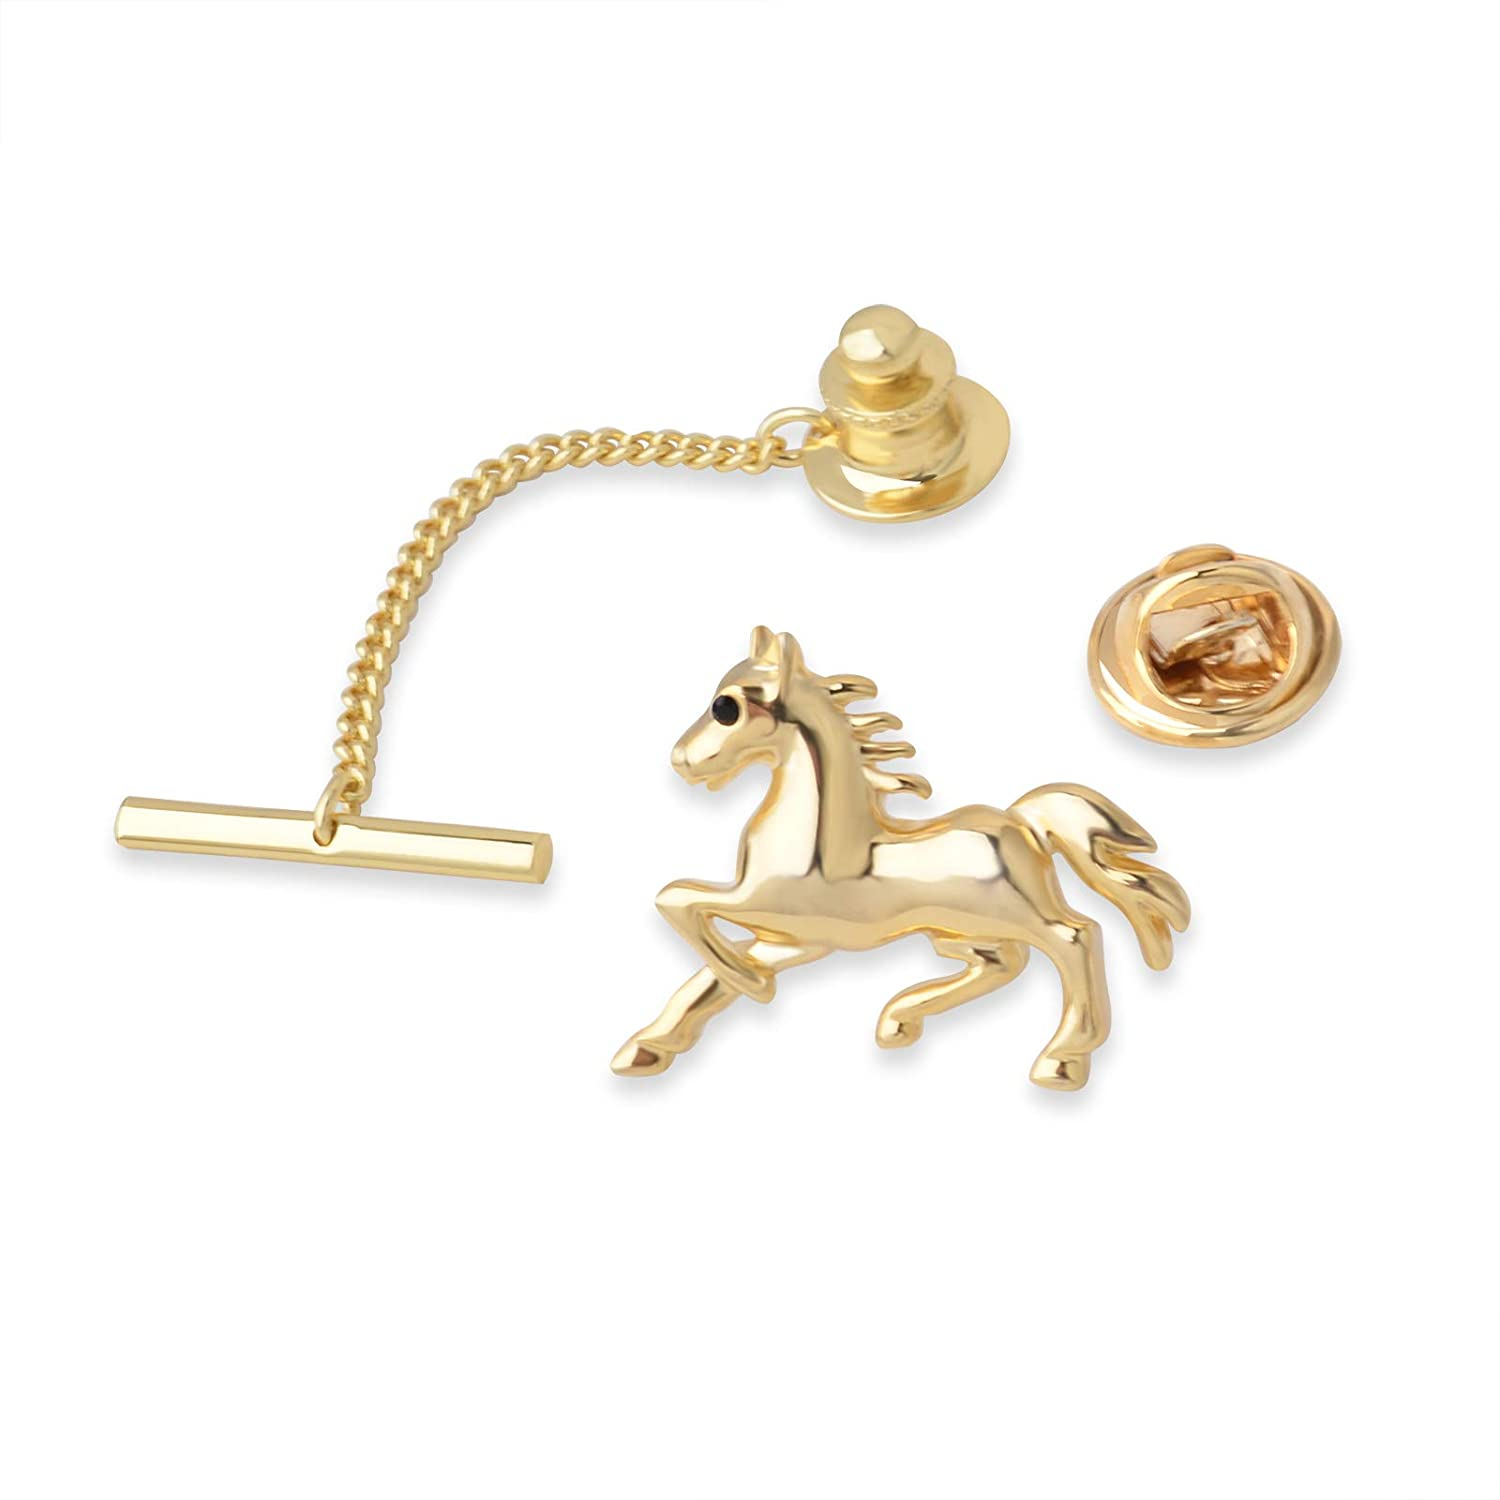 YYBONNIE Mens Horse Tie Necktie Tack Pin with Chain Lapel Pin Gold Silver Tone Wedding Business Accessories